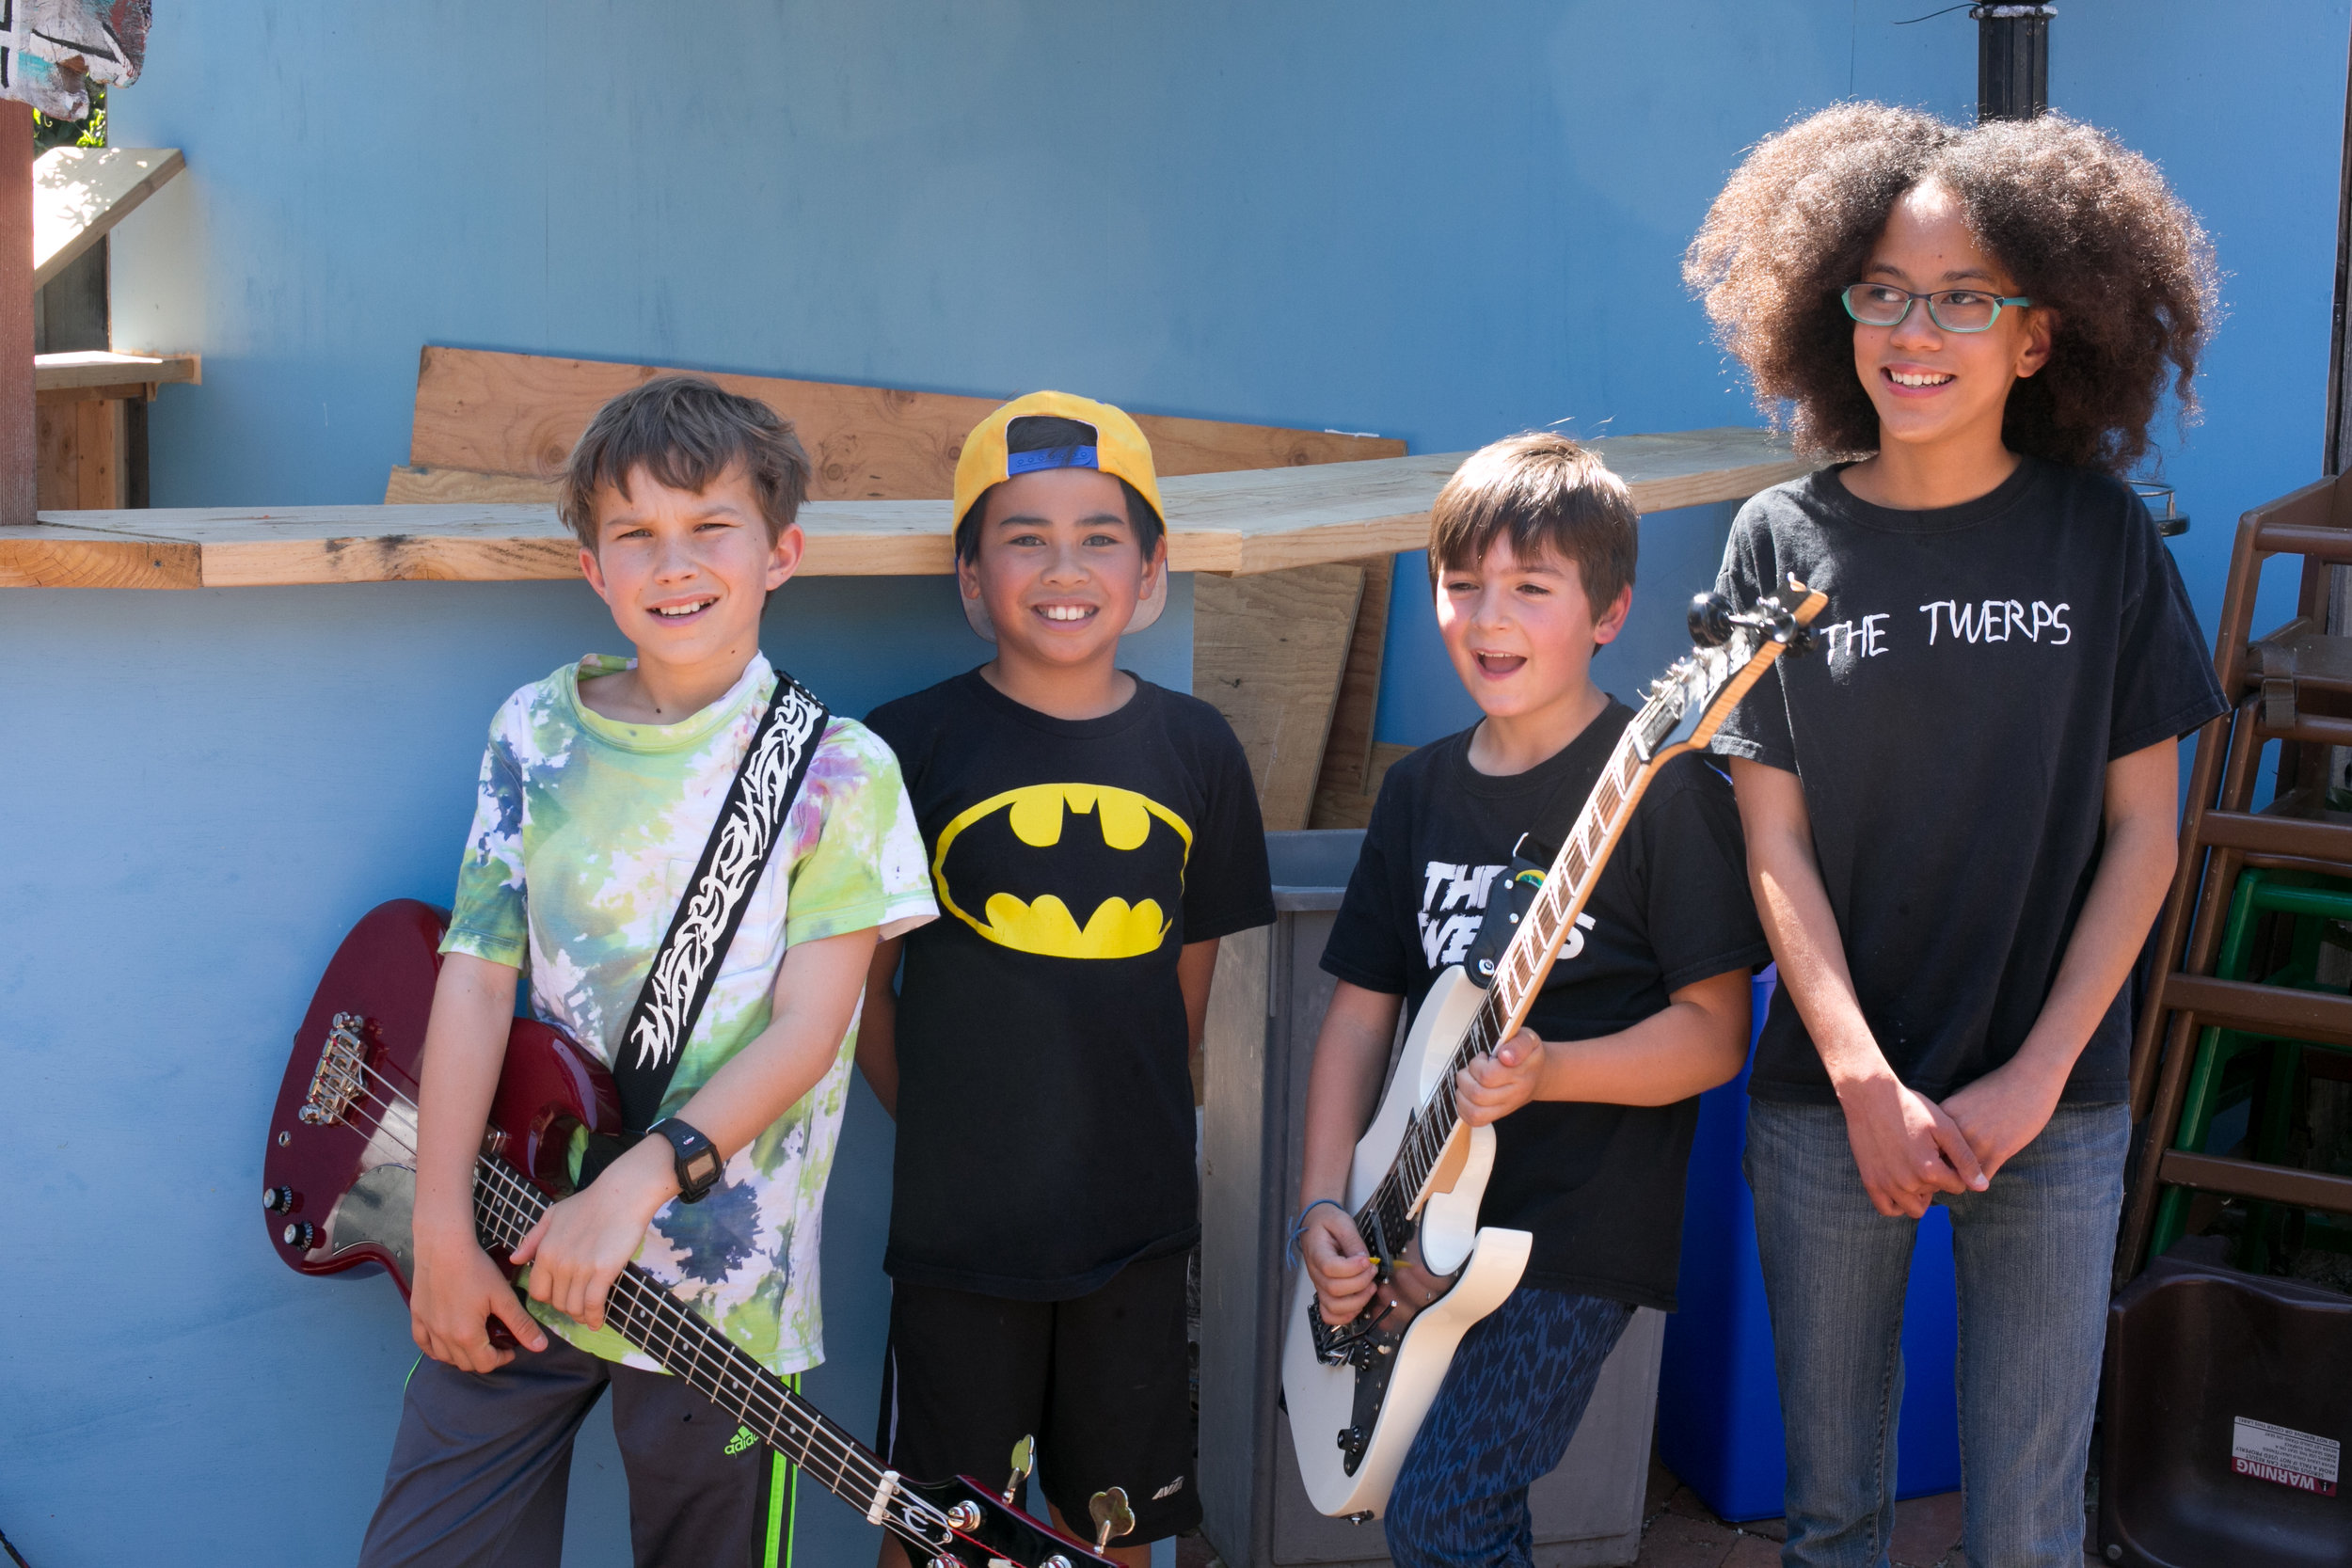 The Twerps 4.30.17: (from left to right) Owen on bass, Isaak on drums, Everest on guitar & Maia on voice!